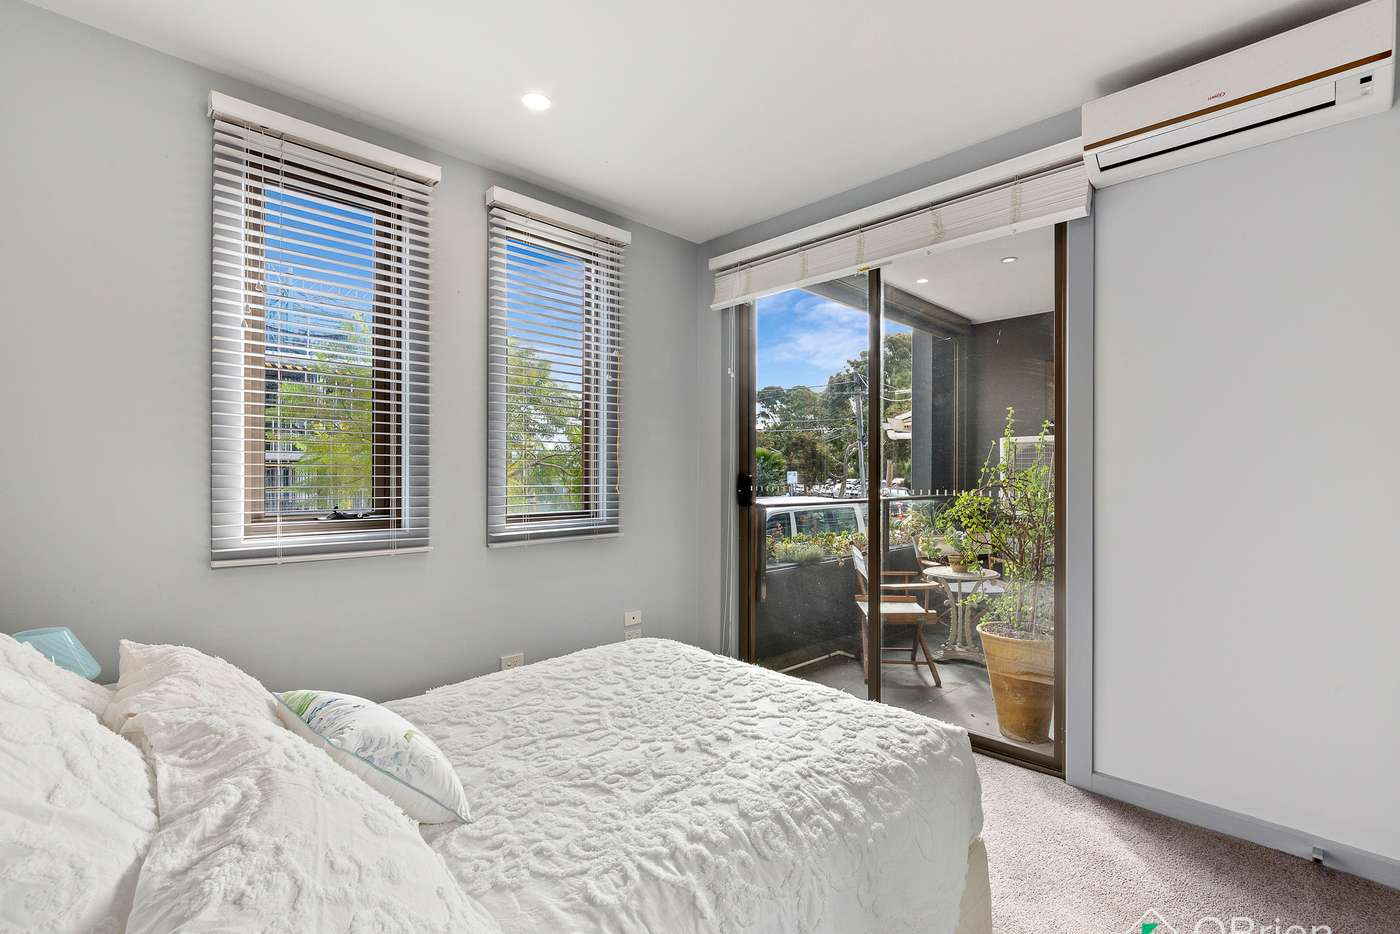 Sixth view of Homely apartment listing, 1/11 Railway Crescent, Hampton VIC 3188